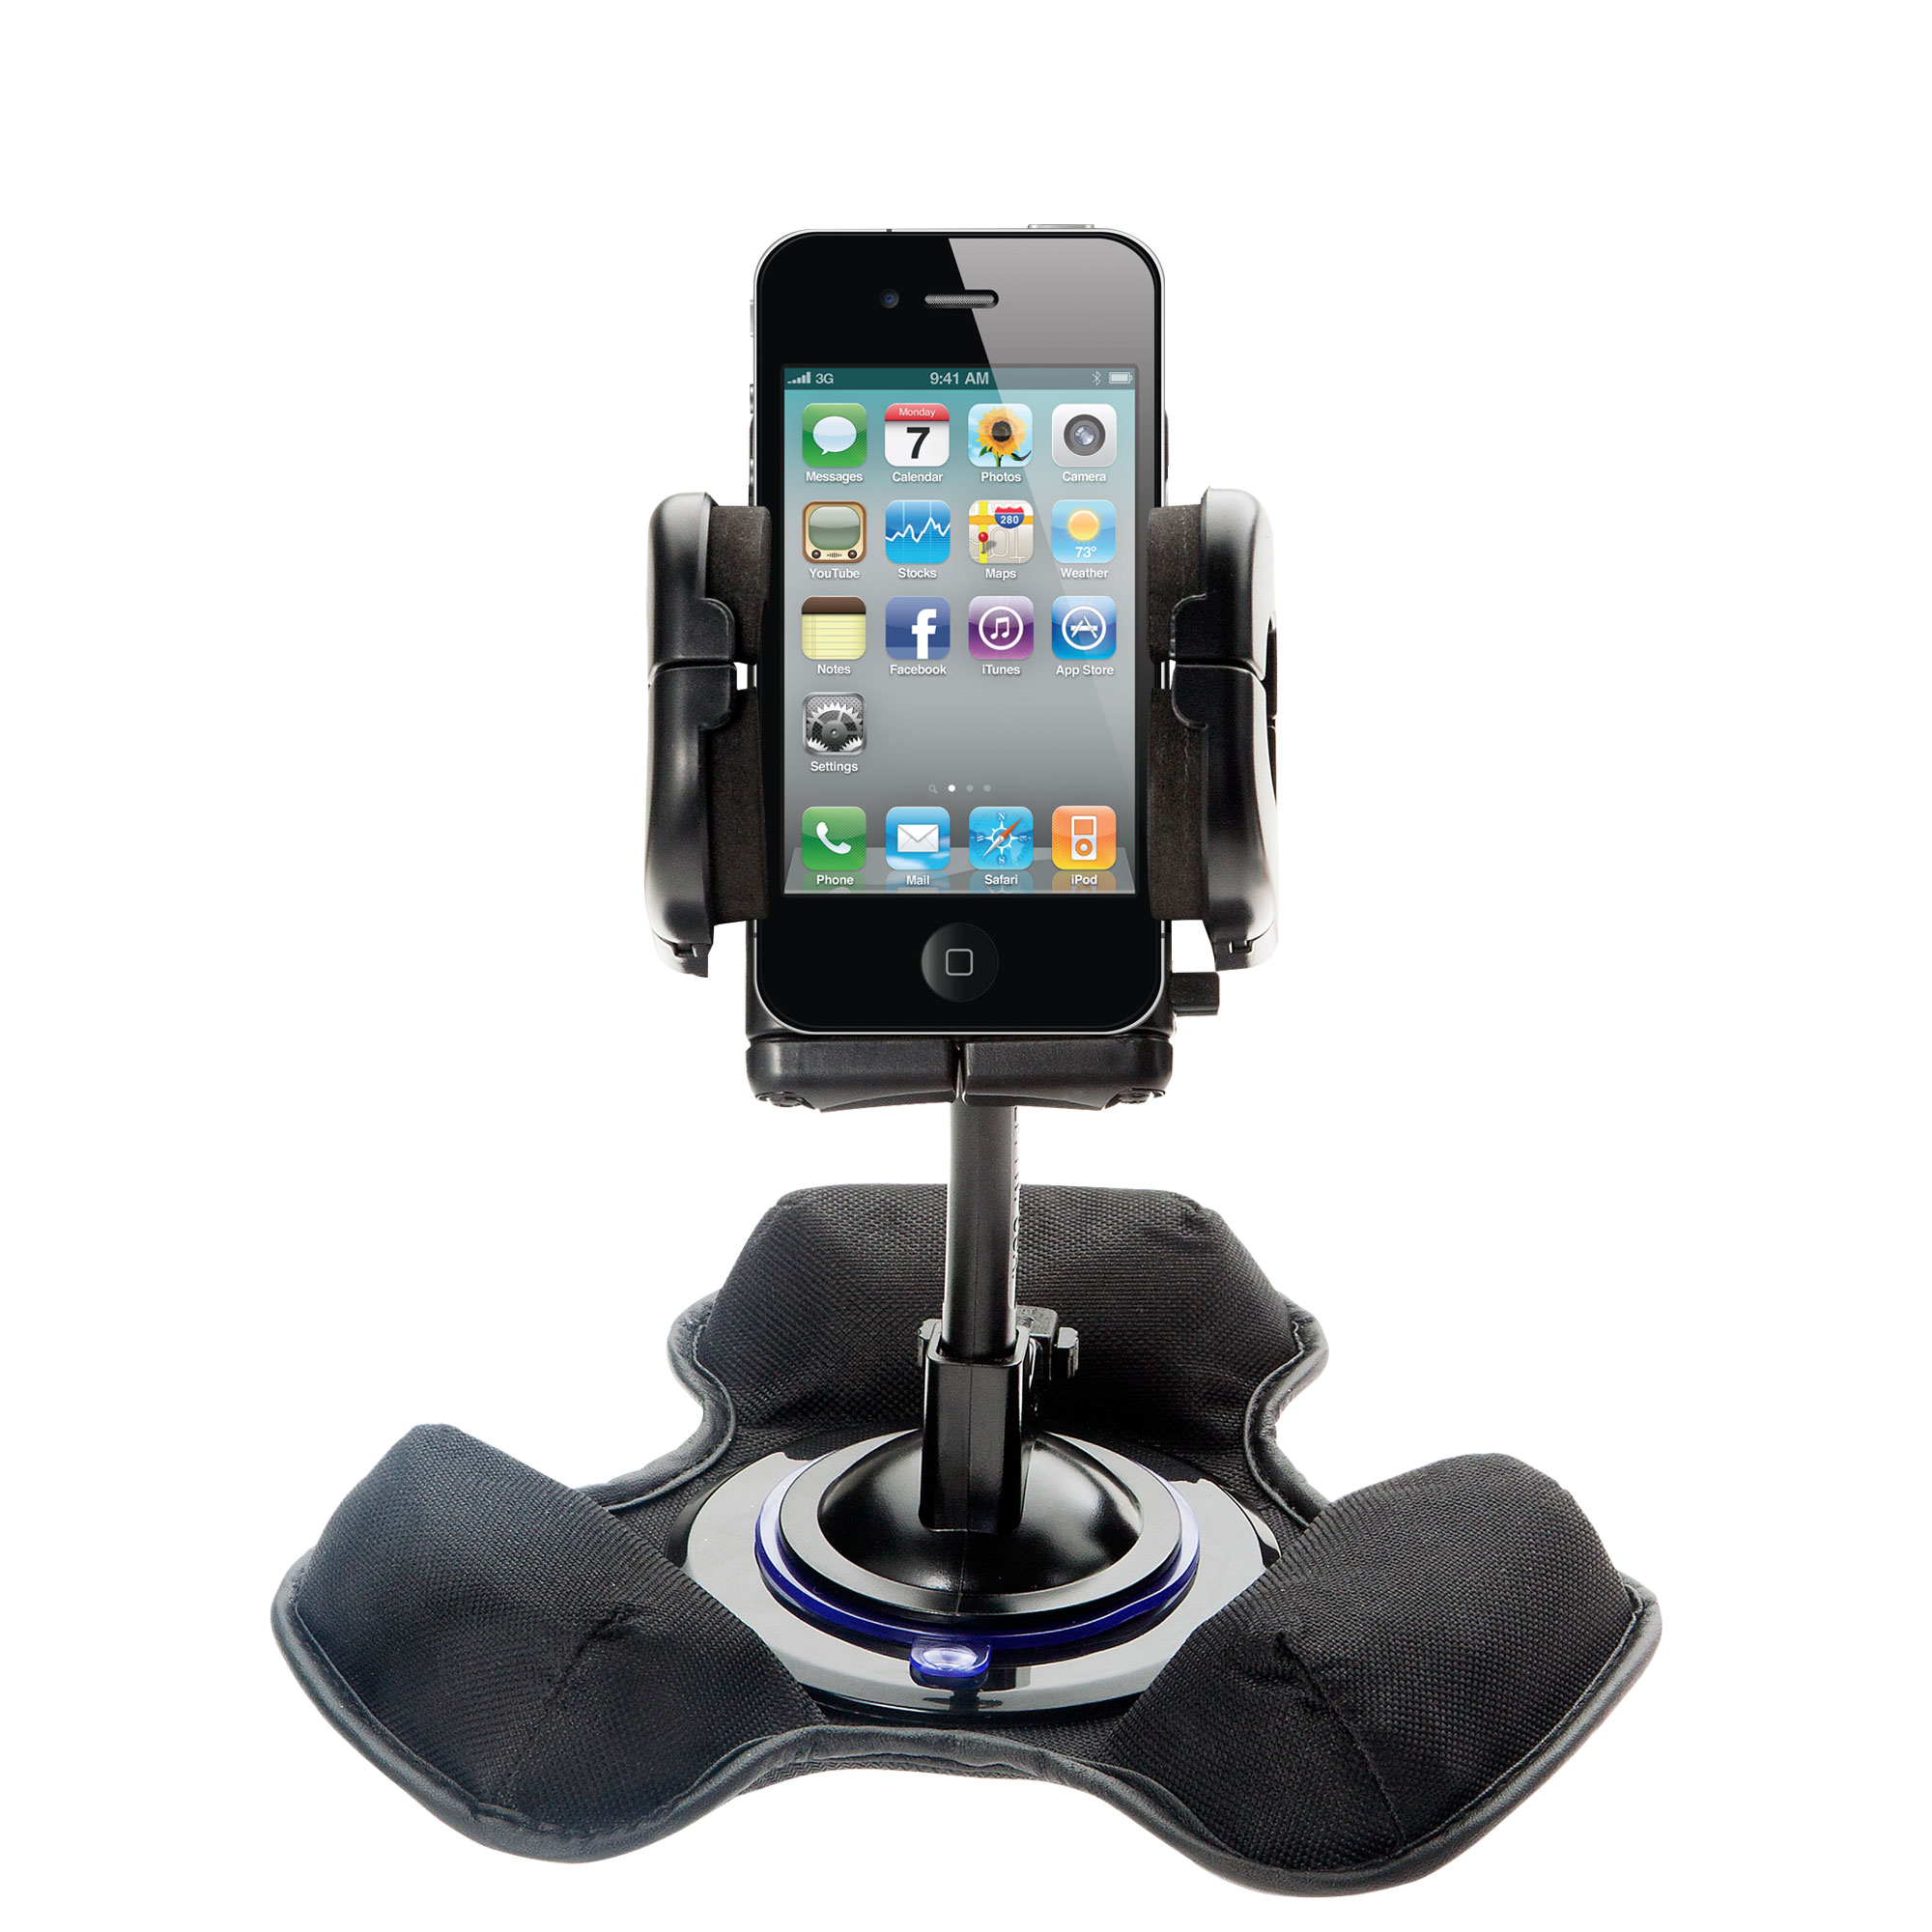 Dash and Windshield Holder compatible with the Apple iPhone 4